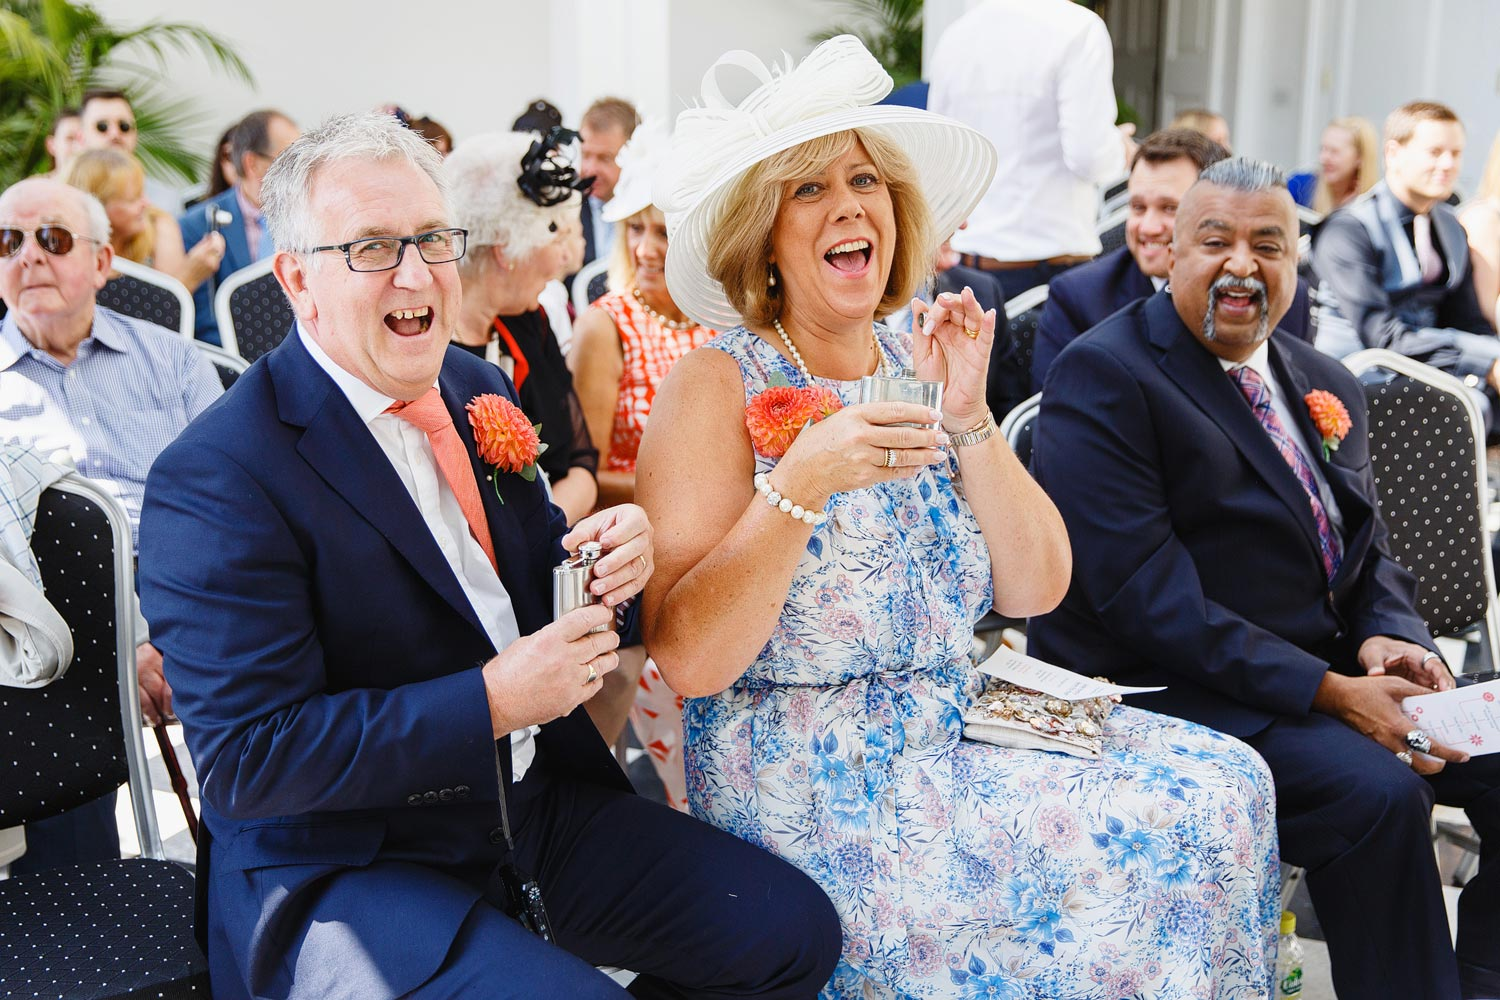 Parents of the groom drink from hip flasks before a wedding at York House in Twickenham.